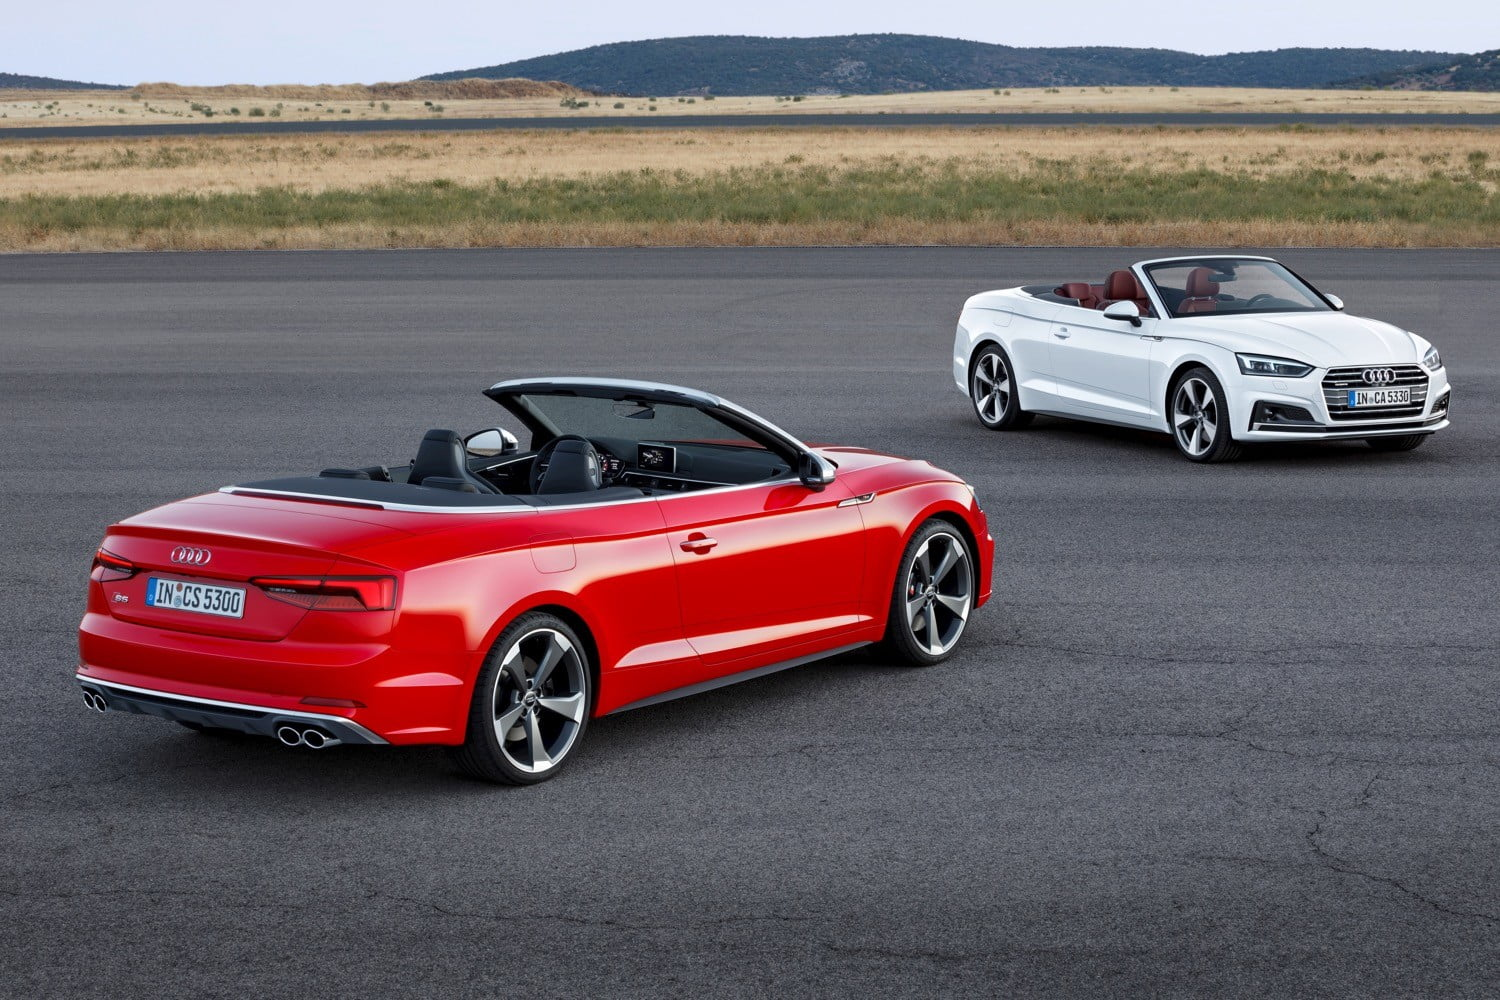 hopes warm test and be farmer audi with that cabriolet around technik corner into s spring the news re just long quattro we road gallery tfsi well a damned summer of now almanac